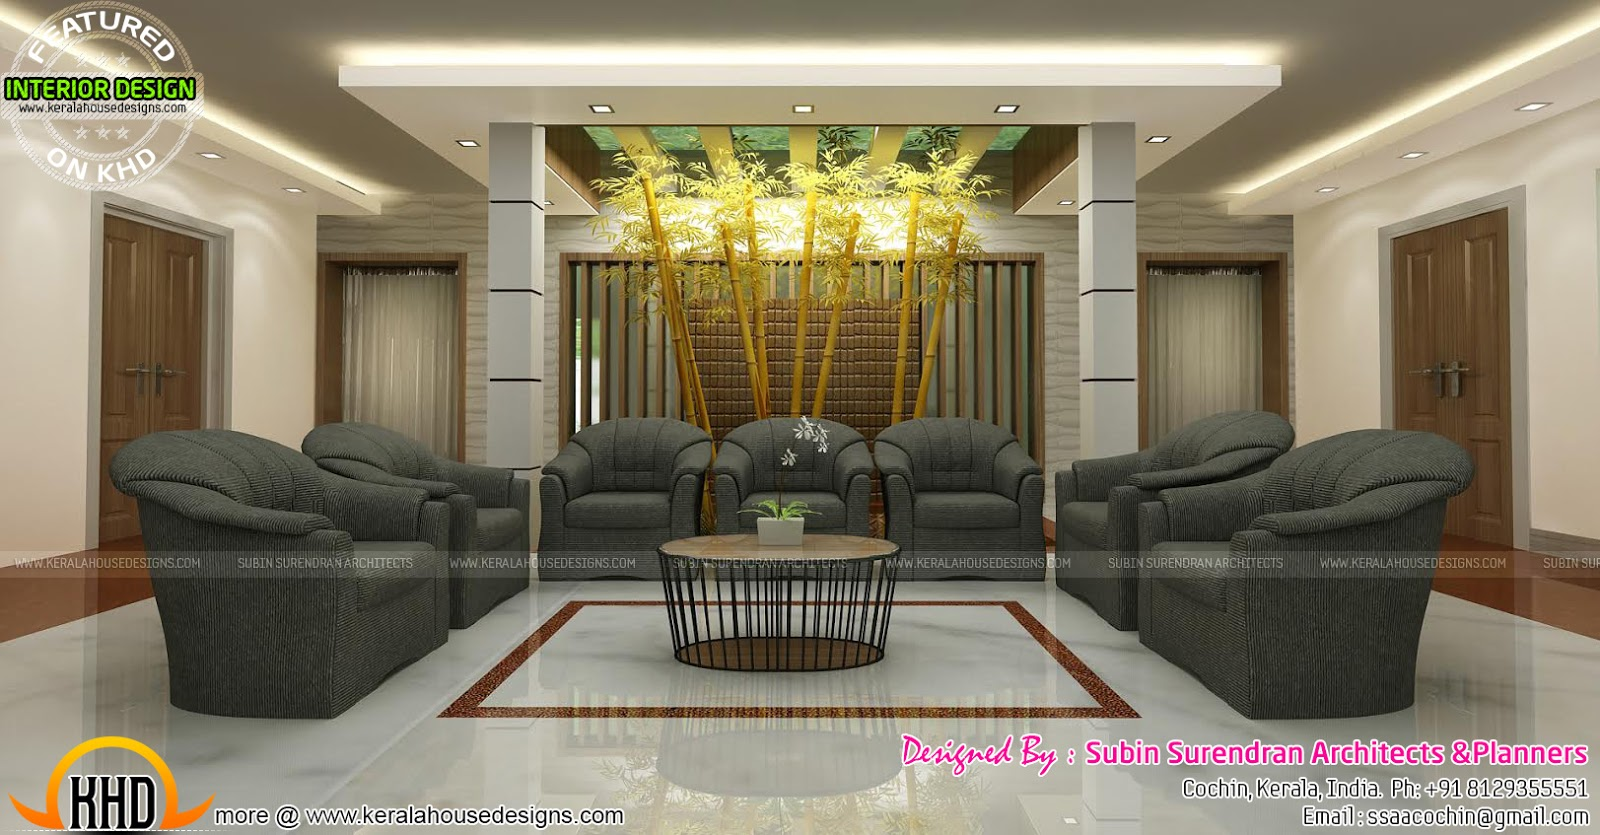 Living rooms modern kitchen interiors in kerala kerala home design and floor plans - In drowing room interiar design ...